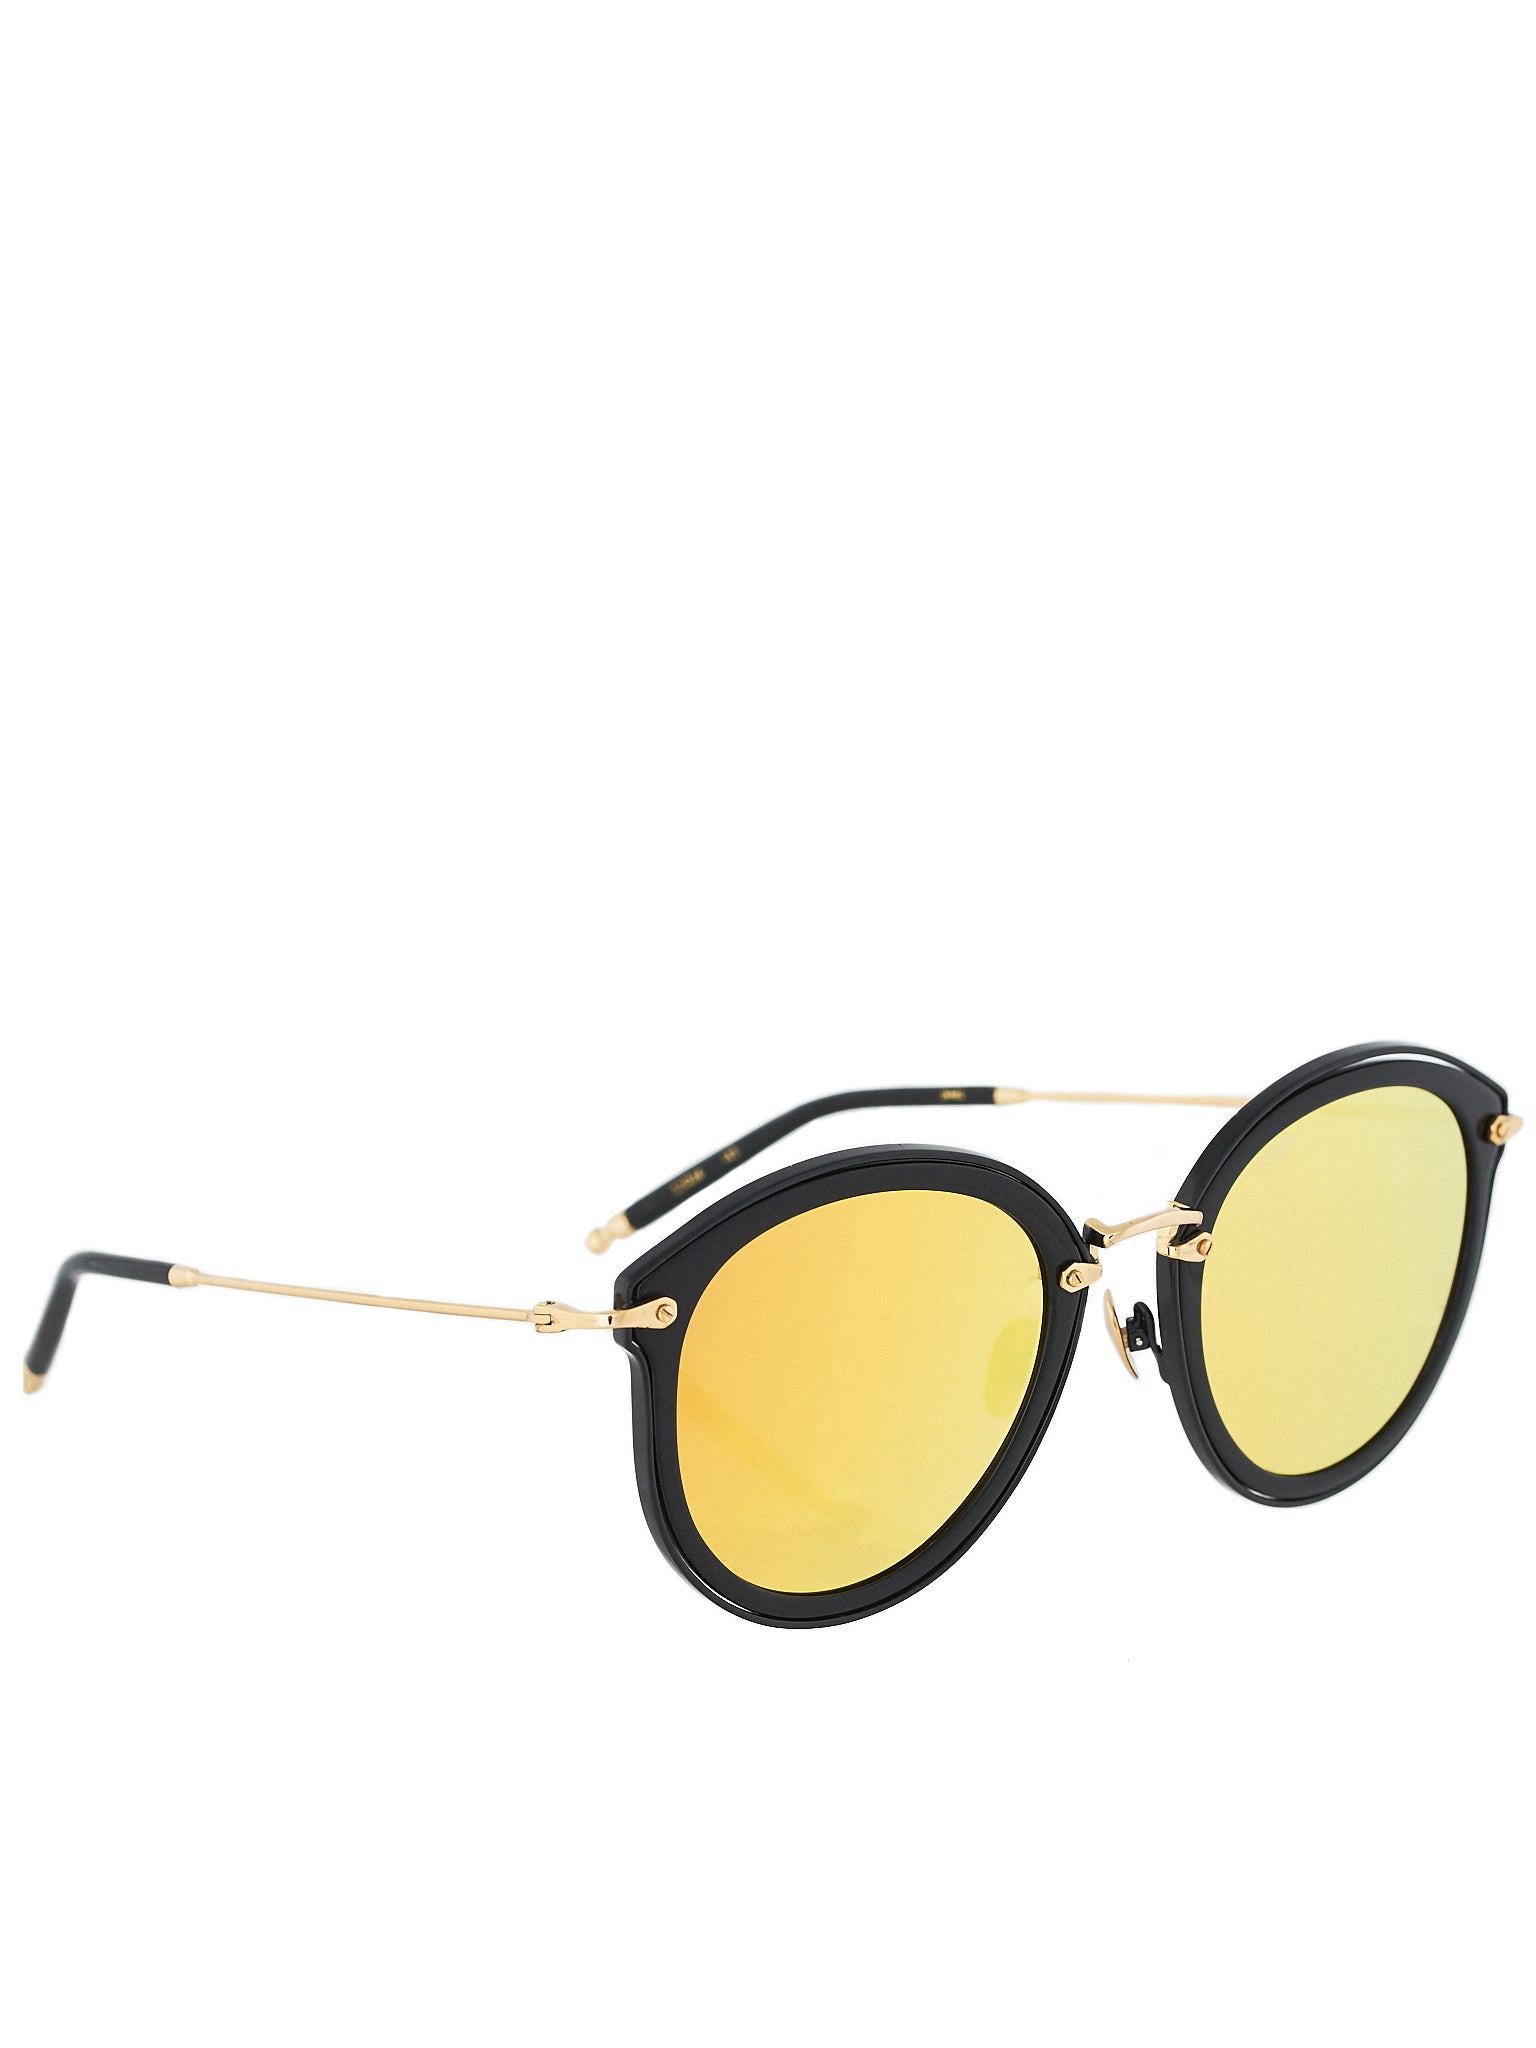 James - Black/Yellow Gold Sunglasses (JAMES-188-BLACK-YGOLD-3016-P31)